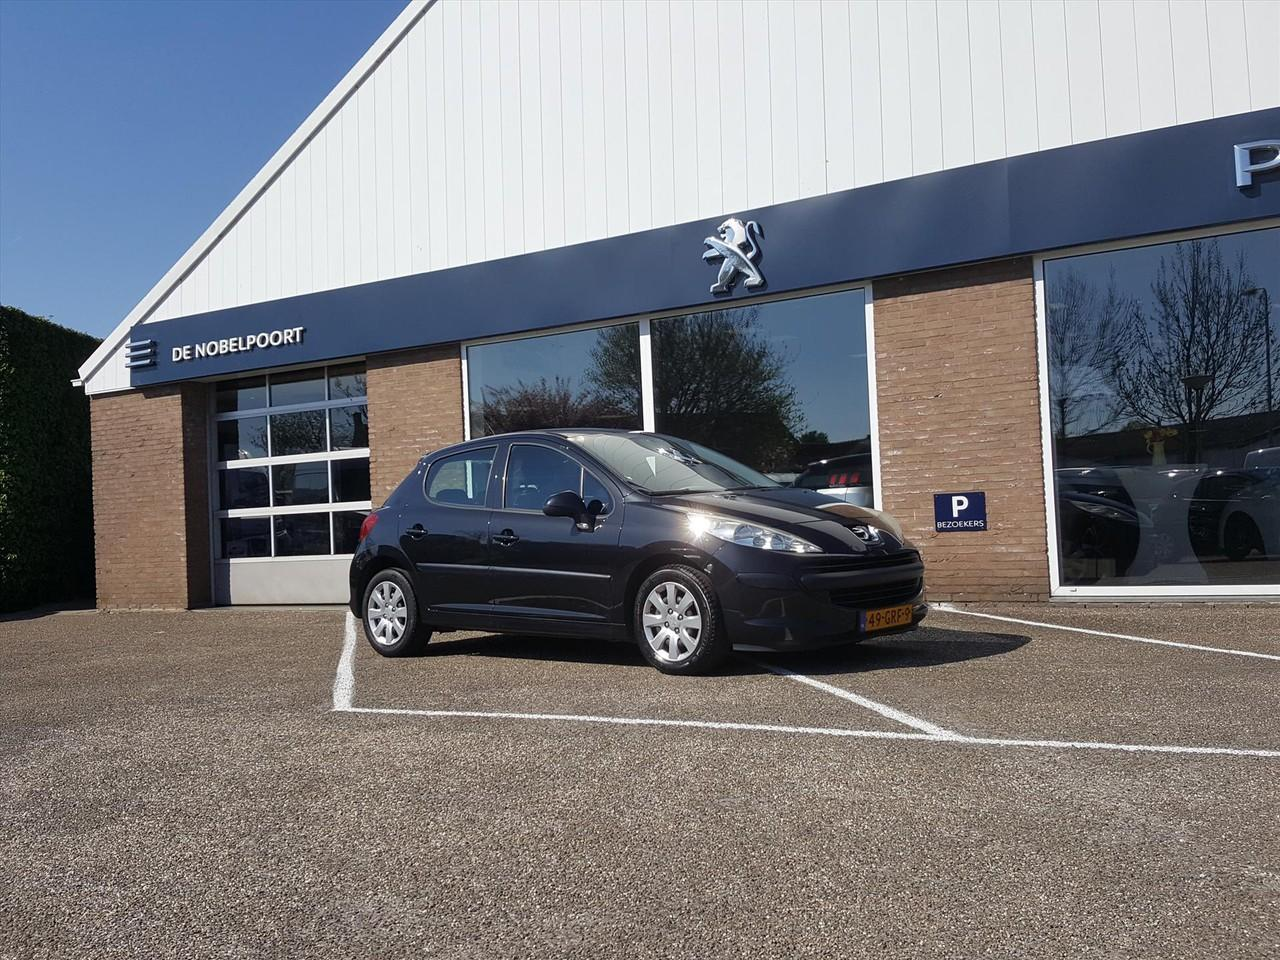 Peugeot 207 Cool'nblue 5d 1.6hdif-92pk airco bluetooth, cd en cruise control